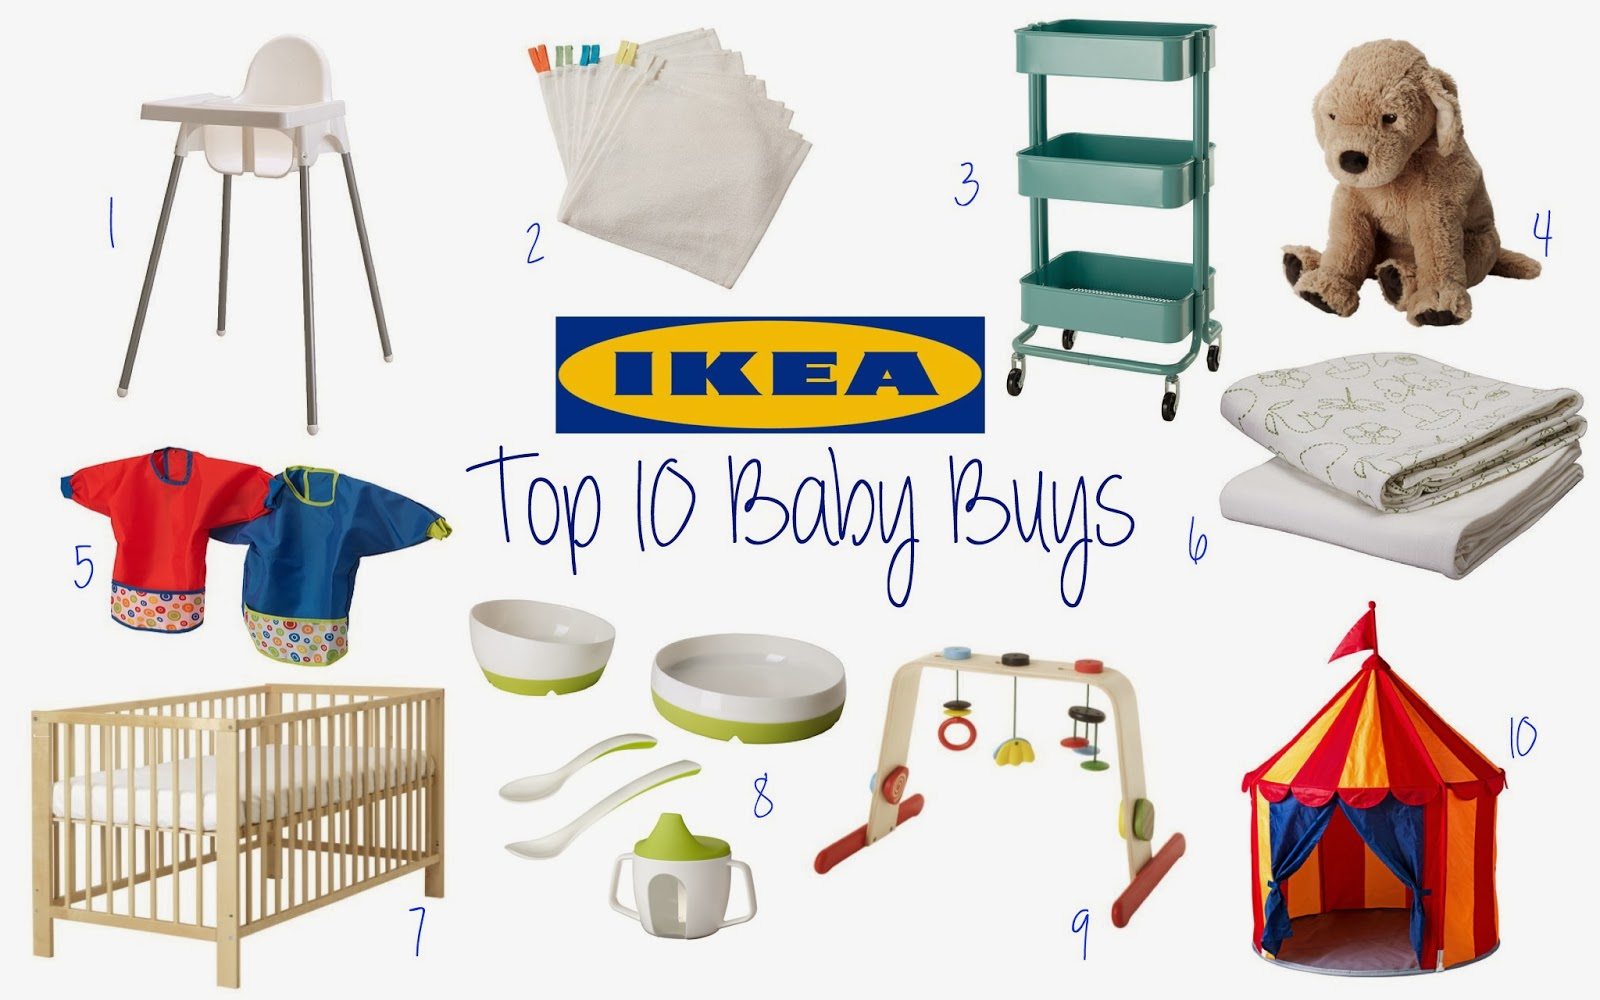 Beau 10 Great Baby Buys You Can Only Find In IKEA | V. I. BRAND